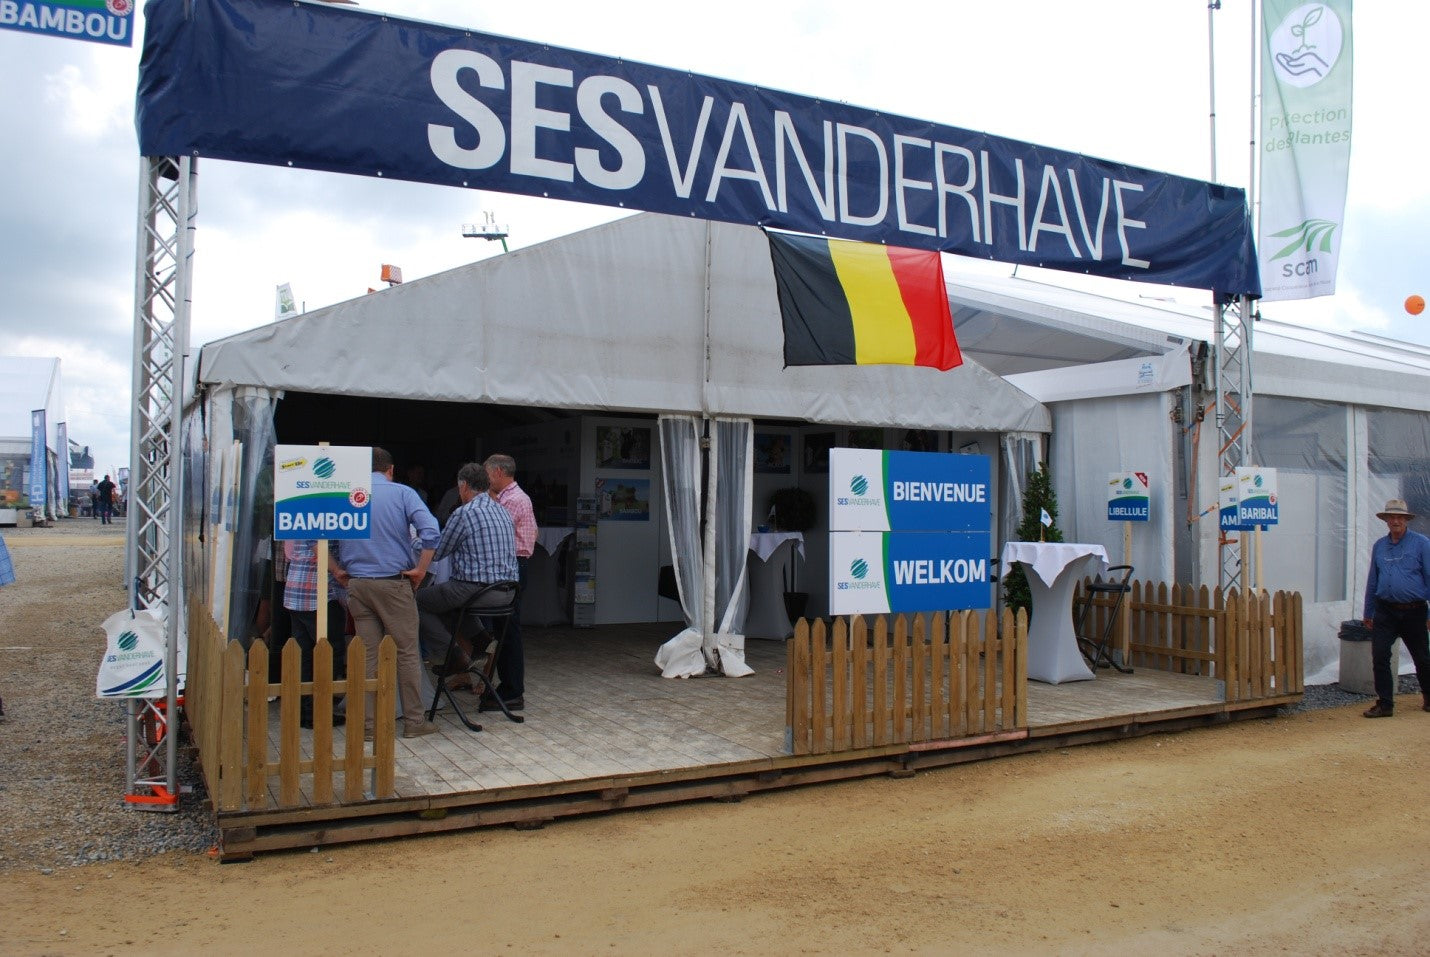 An image of an exhibition stall set up outdoors.